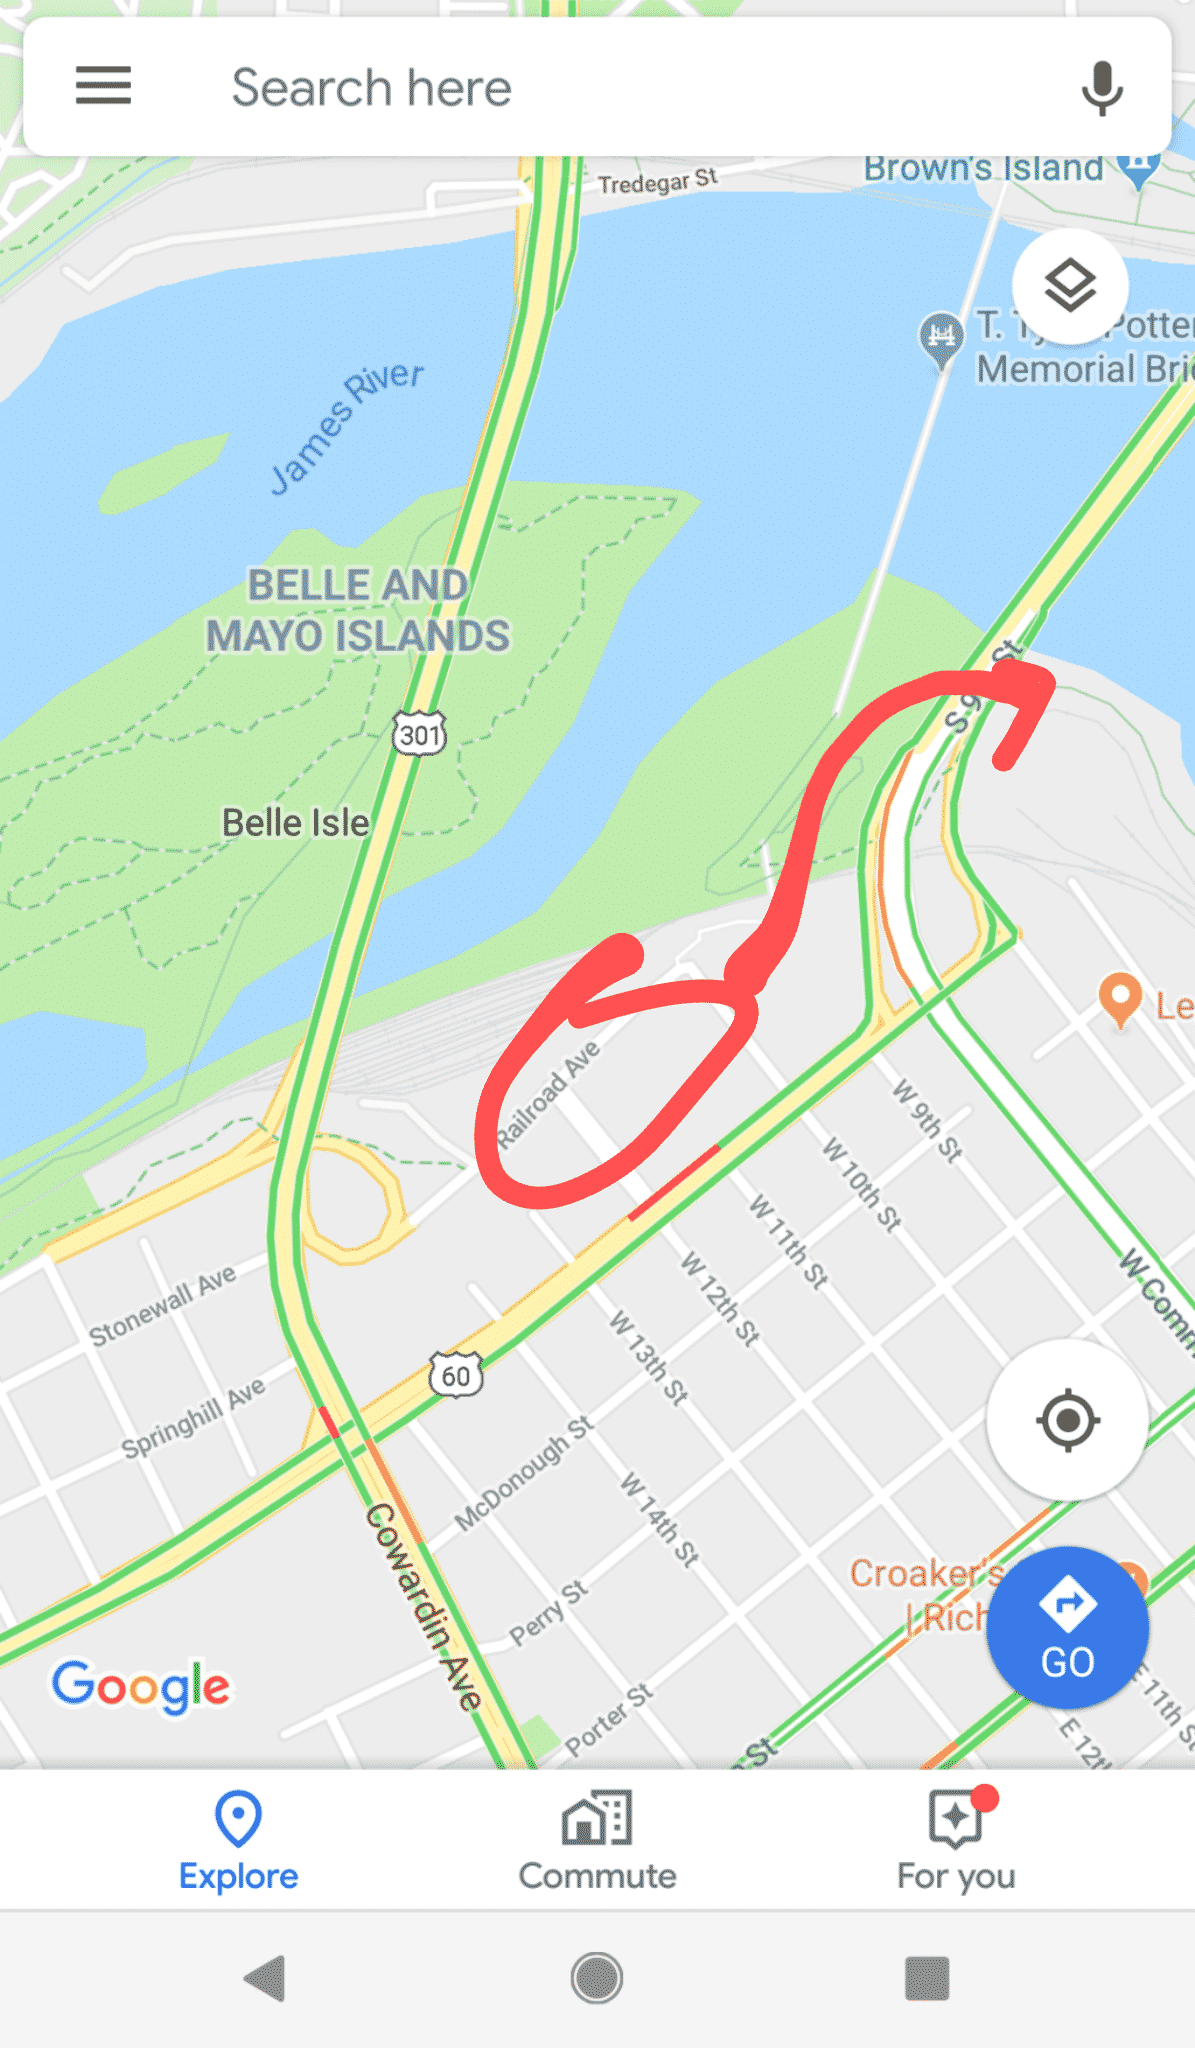 Directions to Flood Wall in RVA